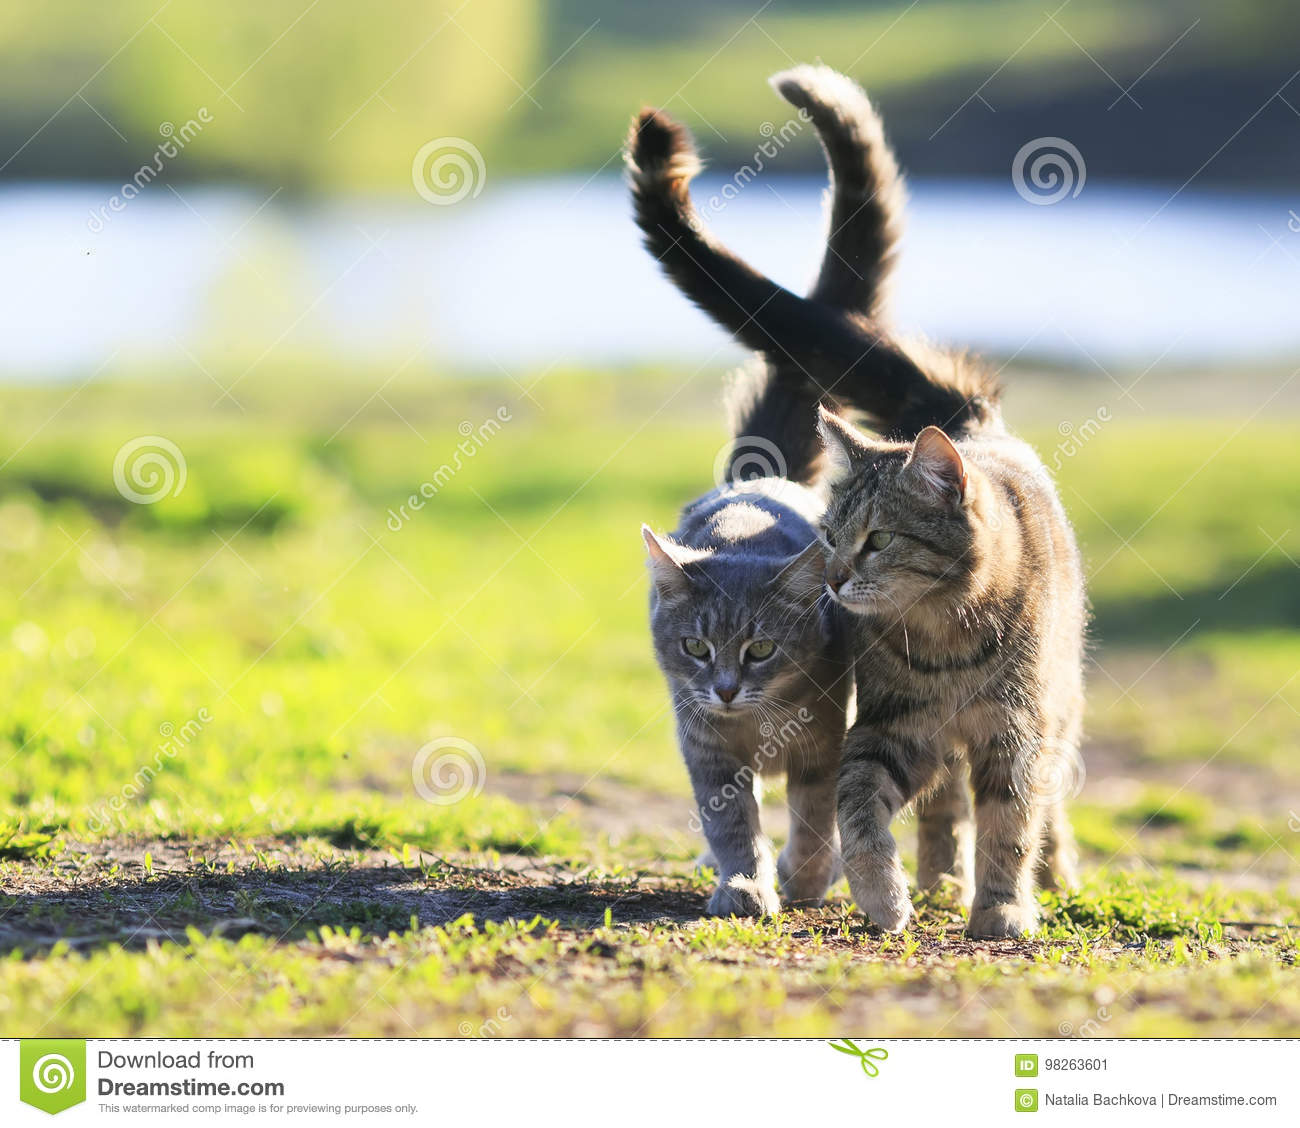 Pair of lovers striped cat walking on green grass next to a Sun